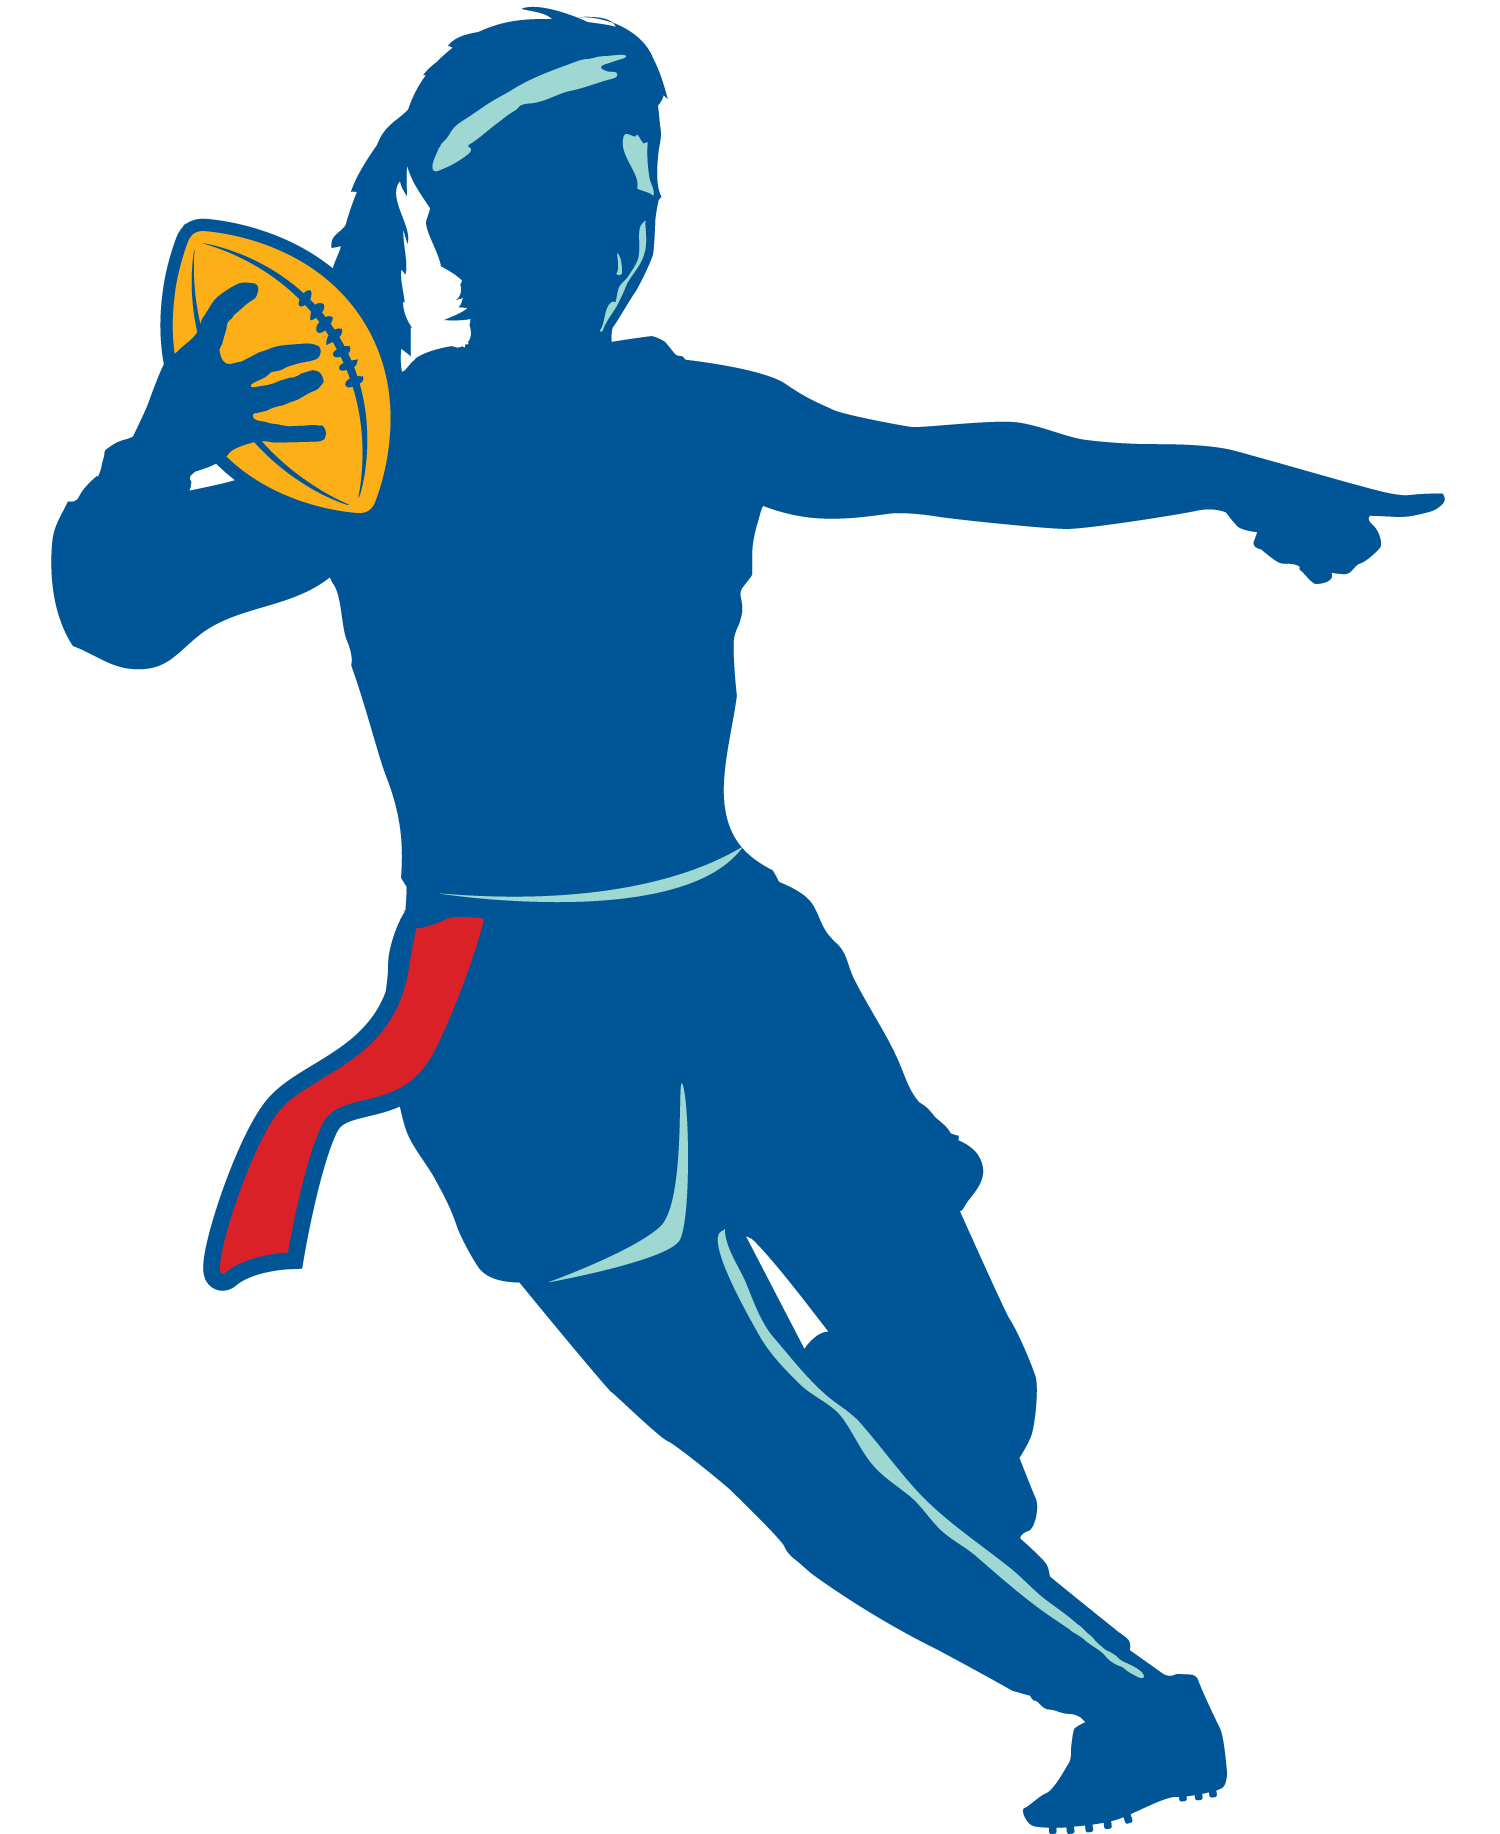 Clip Art Flag Football Clipart flag football clipart kid asce american society of civil engineers